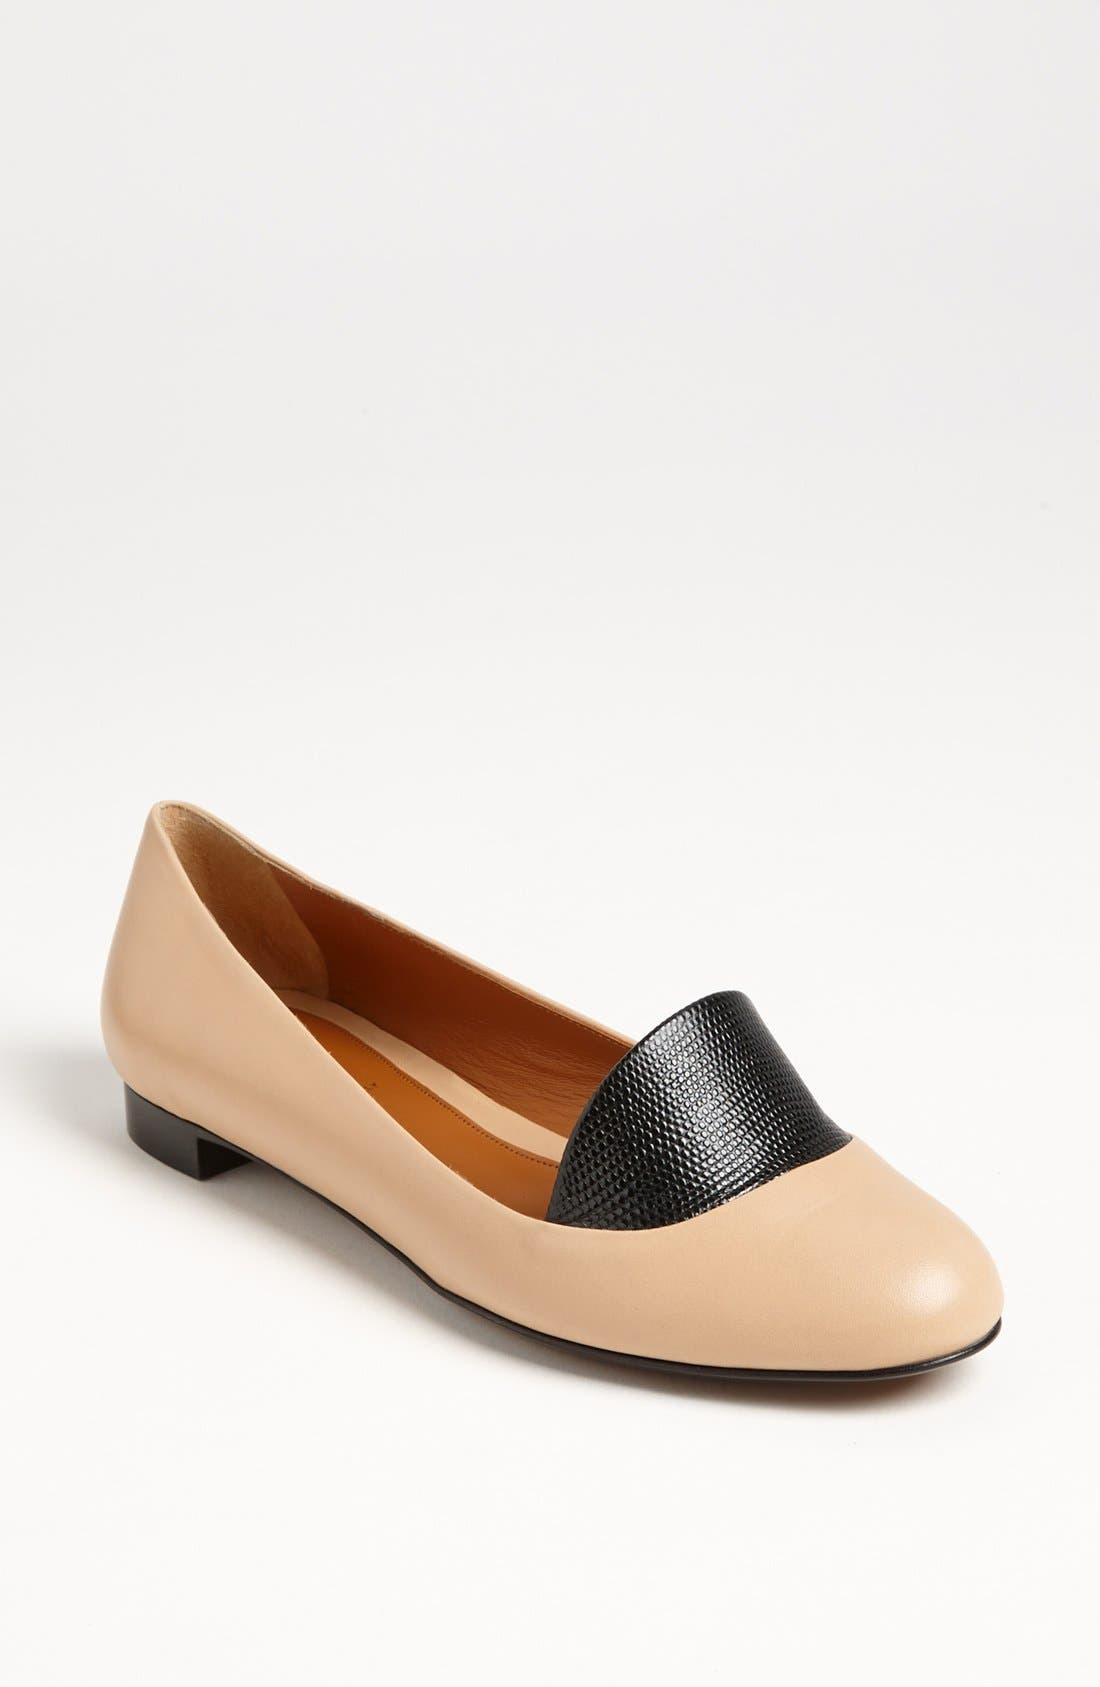 Alternate Image 1 Selected - Fendi 'Anemone' Flat